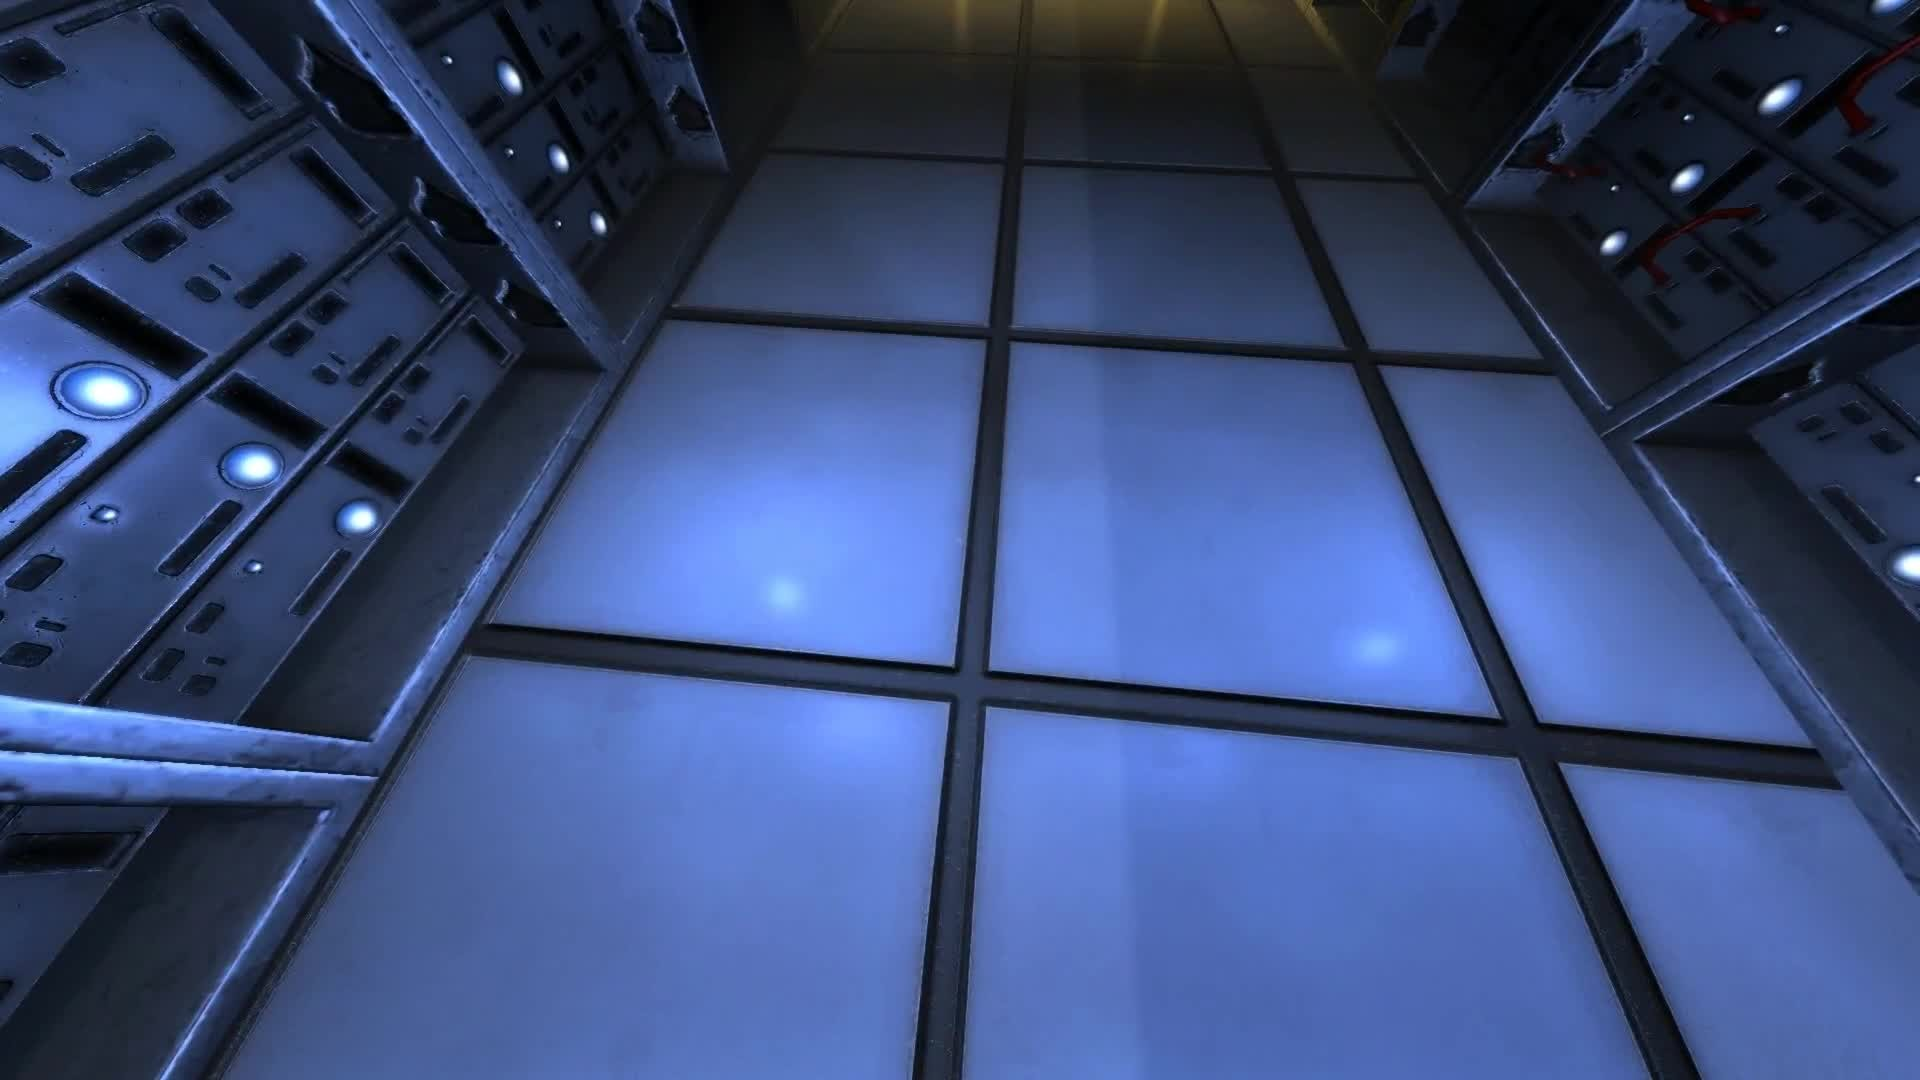 1920x1080 Server Room Area video - Spacies mod for Amnesia: The Dark Descent - Mod DB